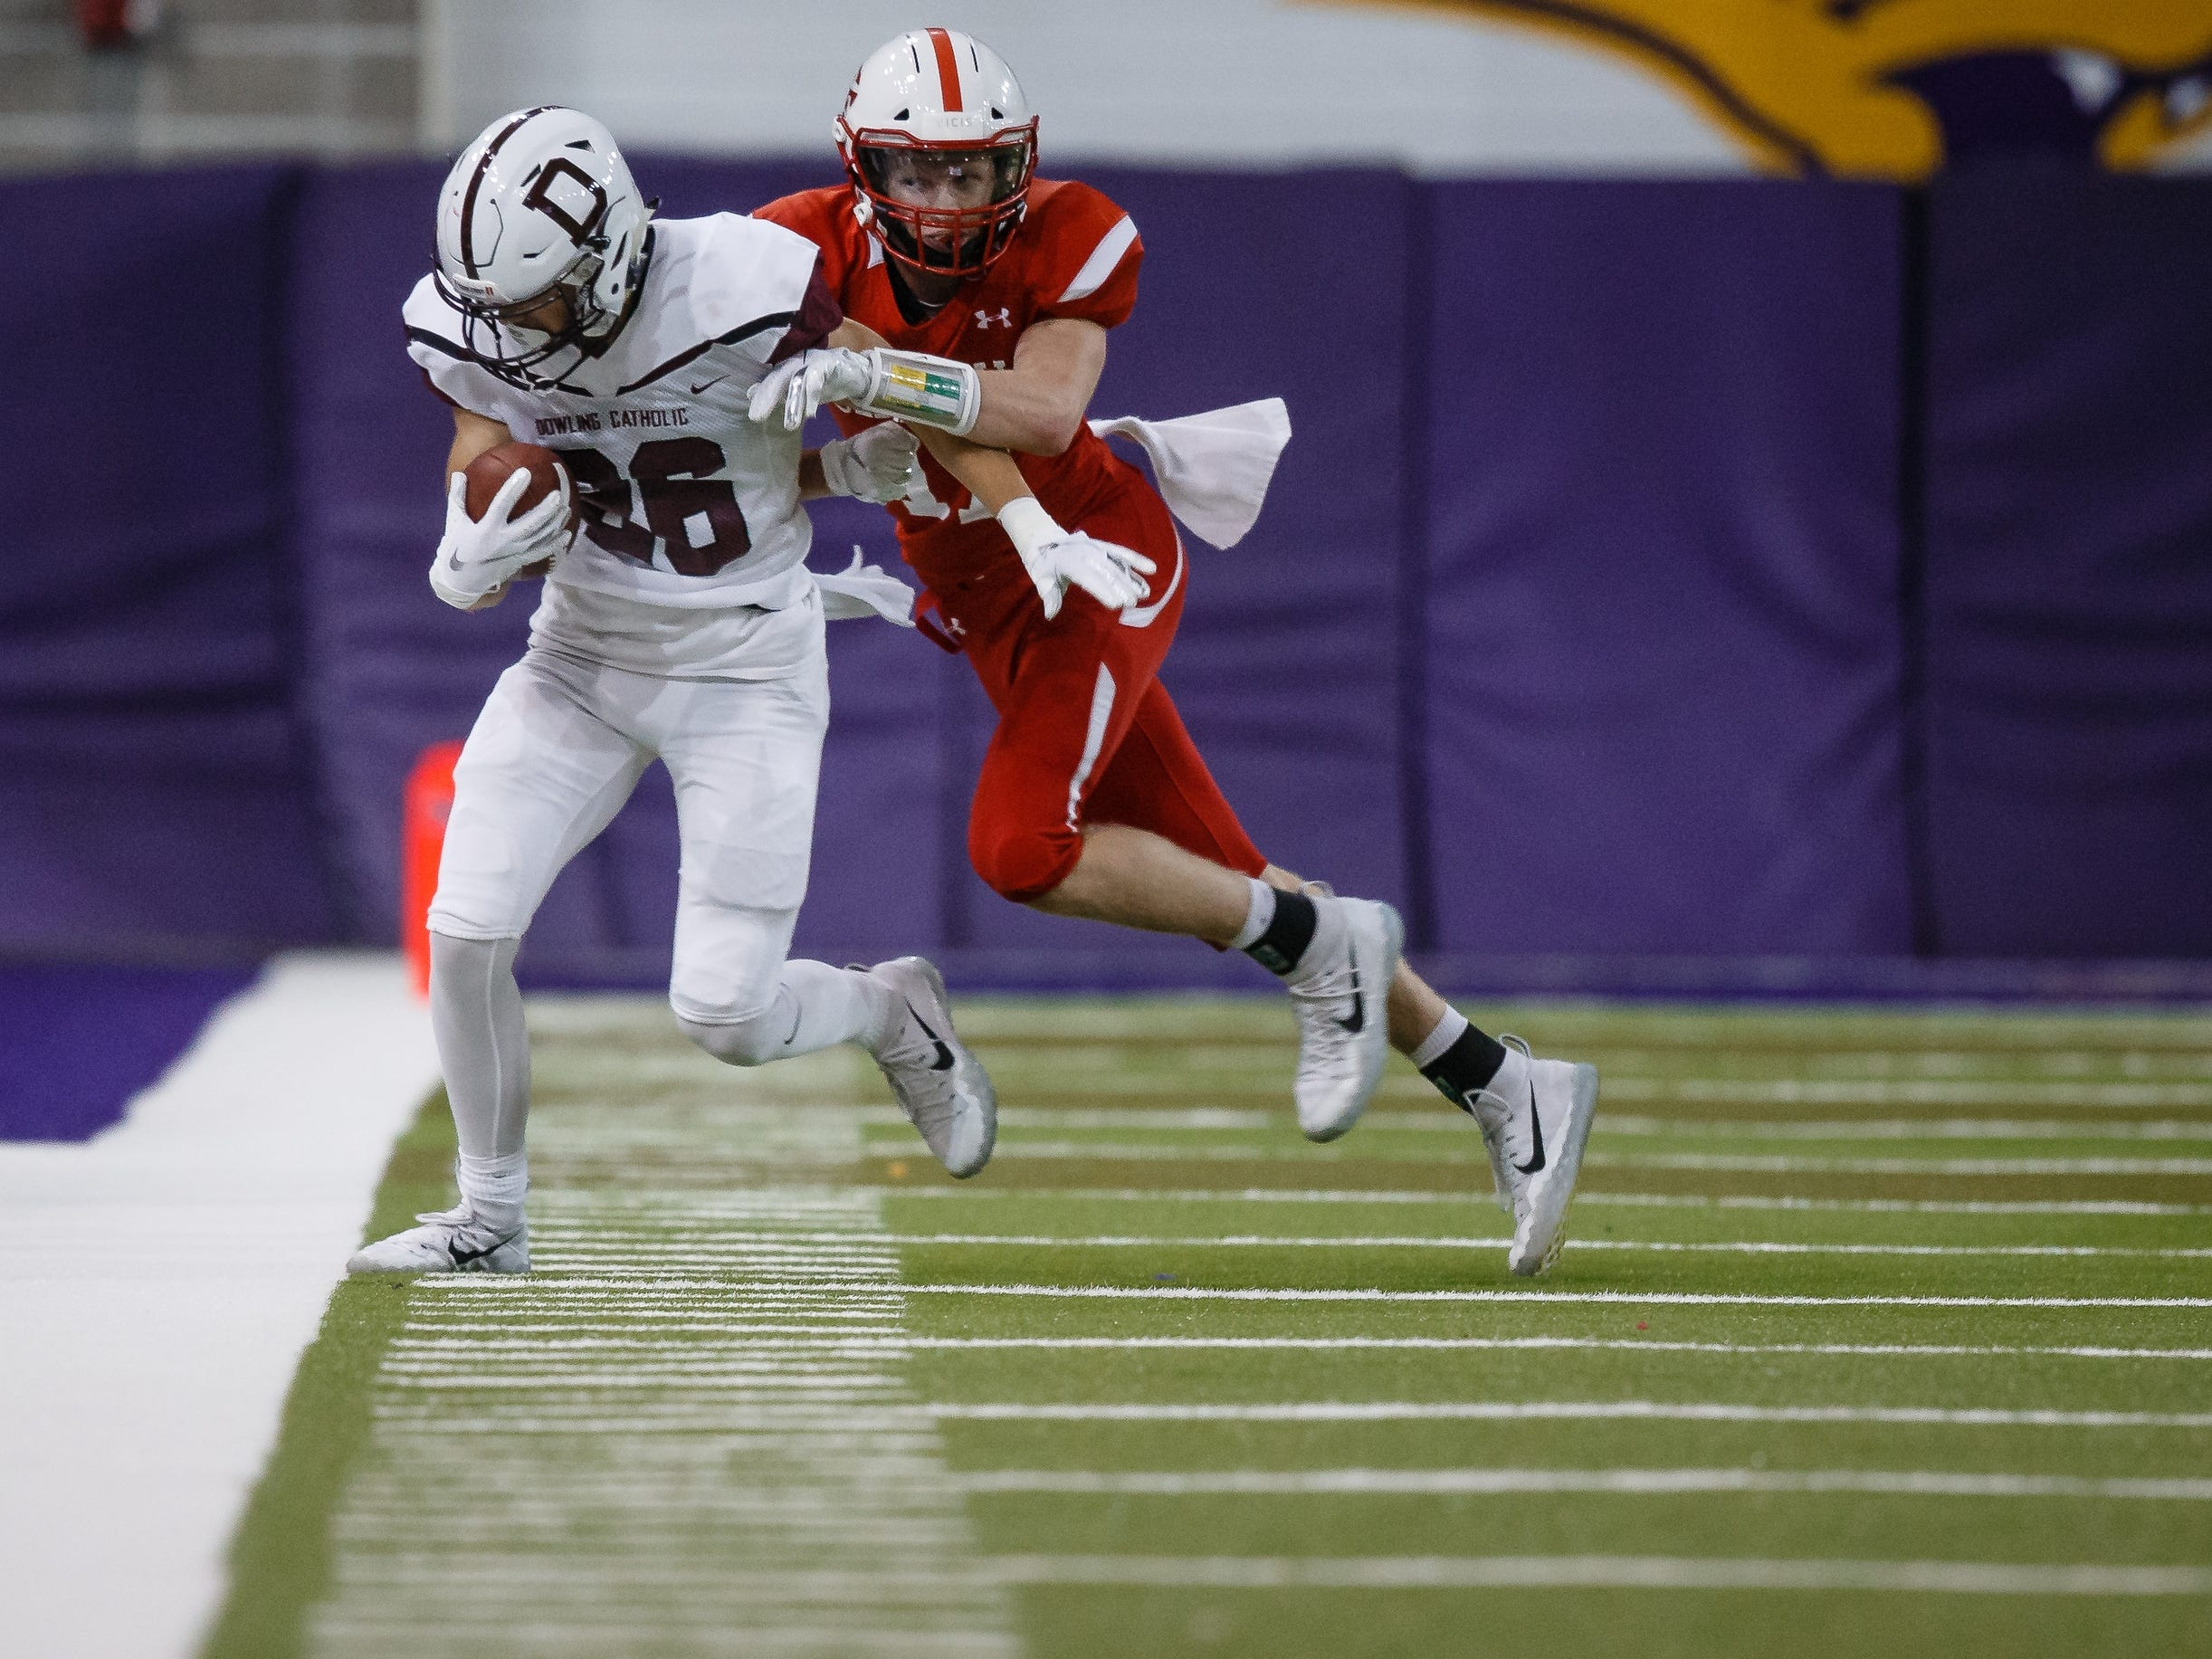 Dowling Catholic's Connor Ibach (26) is pushed out of bounds by Cedar Falls's Logan Wolf (17) during their class 4A state championship football game on Friday, Nov. 16, 2018, in Cedar Falls. Cedar Falls takes a 13-7 lead into halftime.